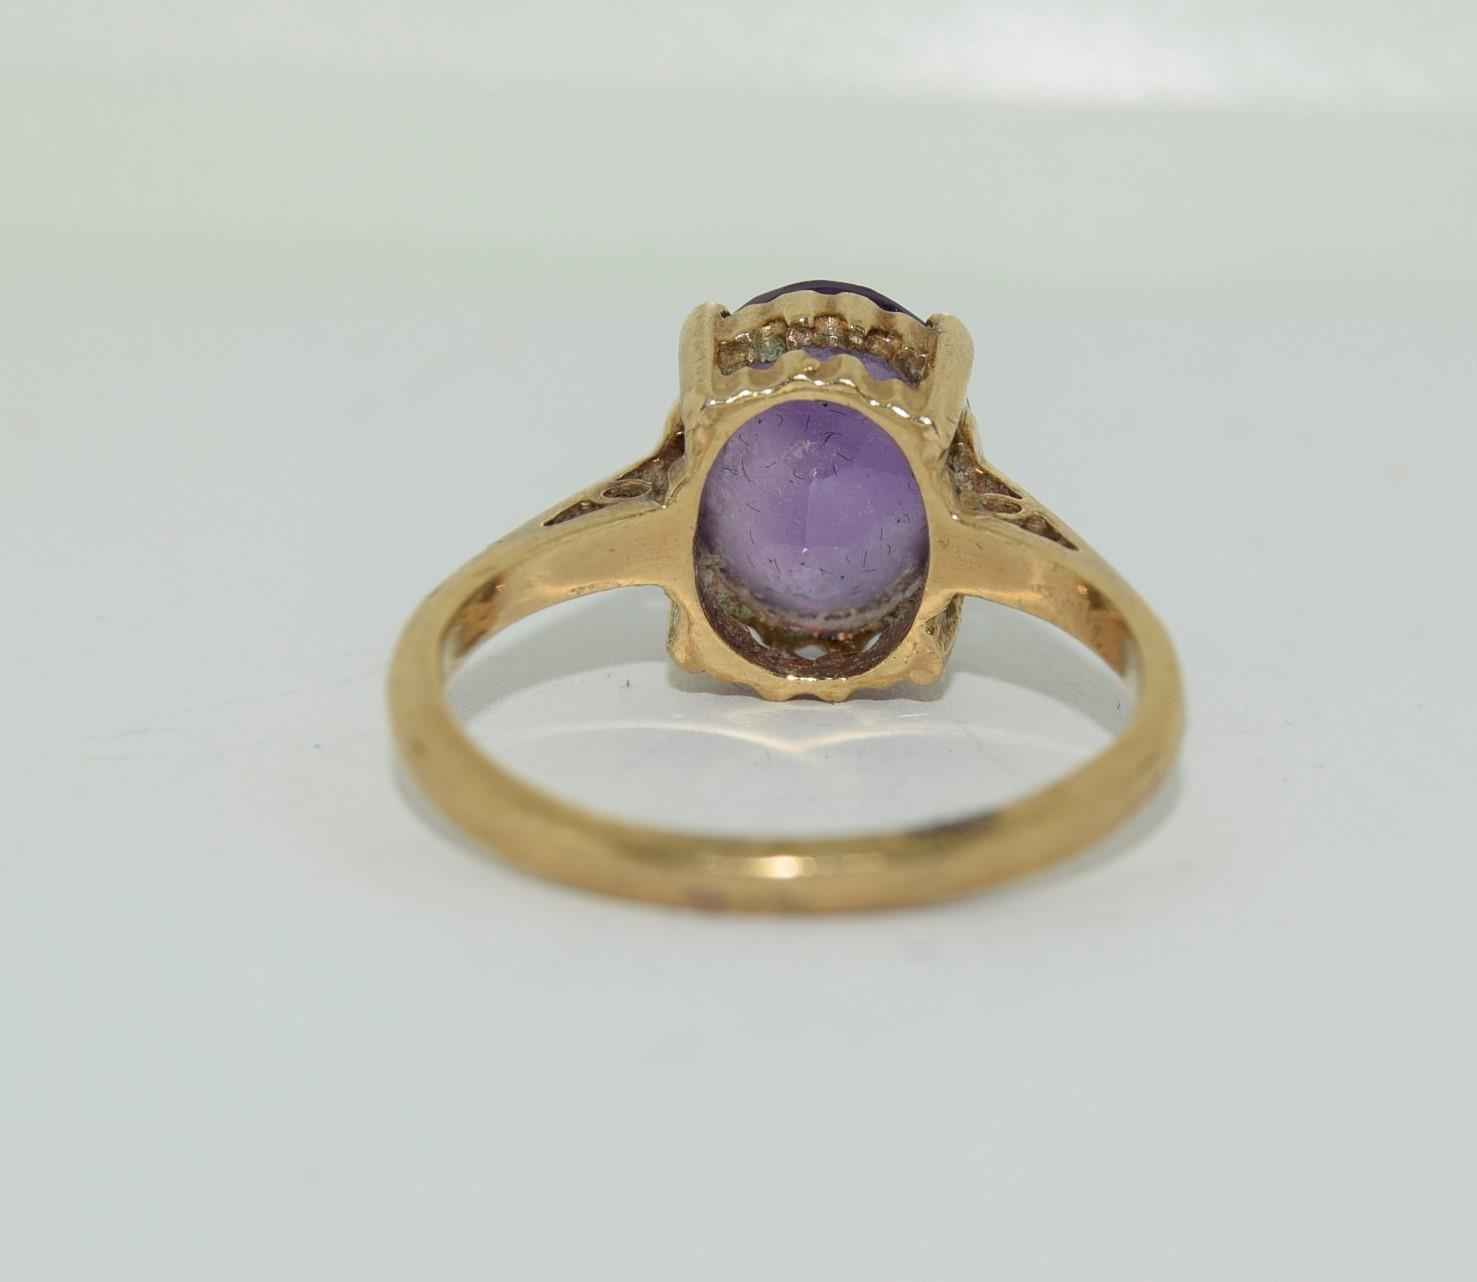 9ct gold ladies Amethyst ring size N - Image 6 of 12